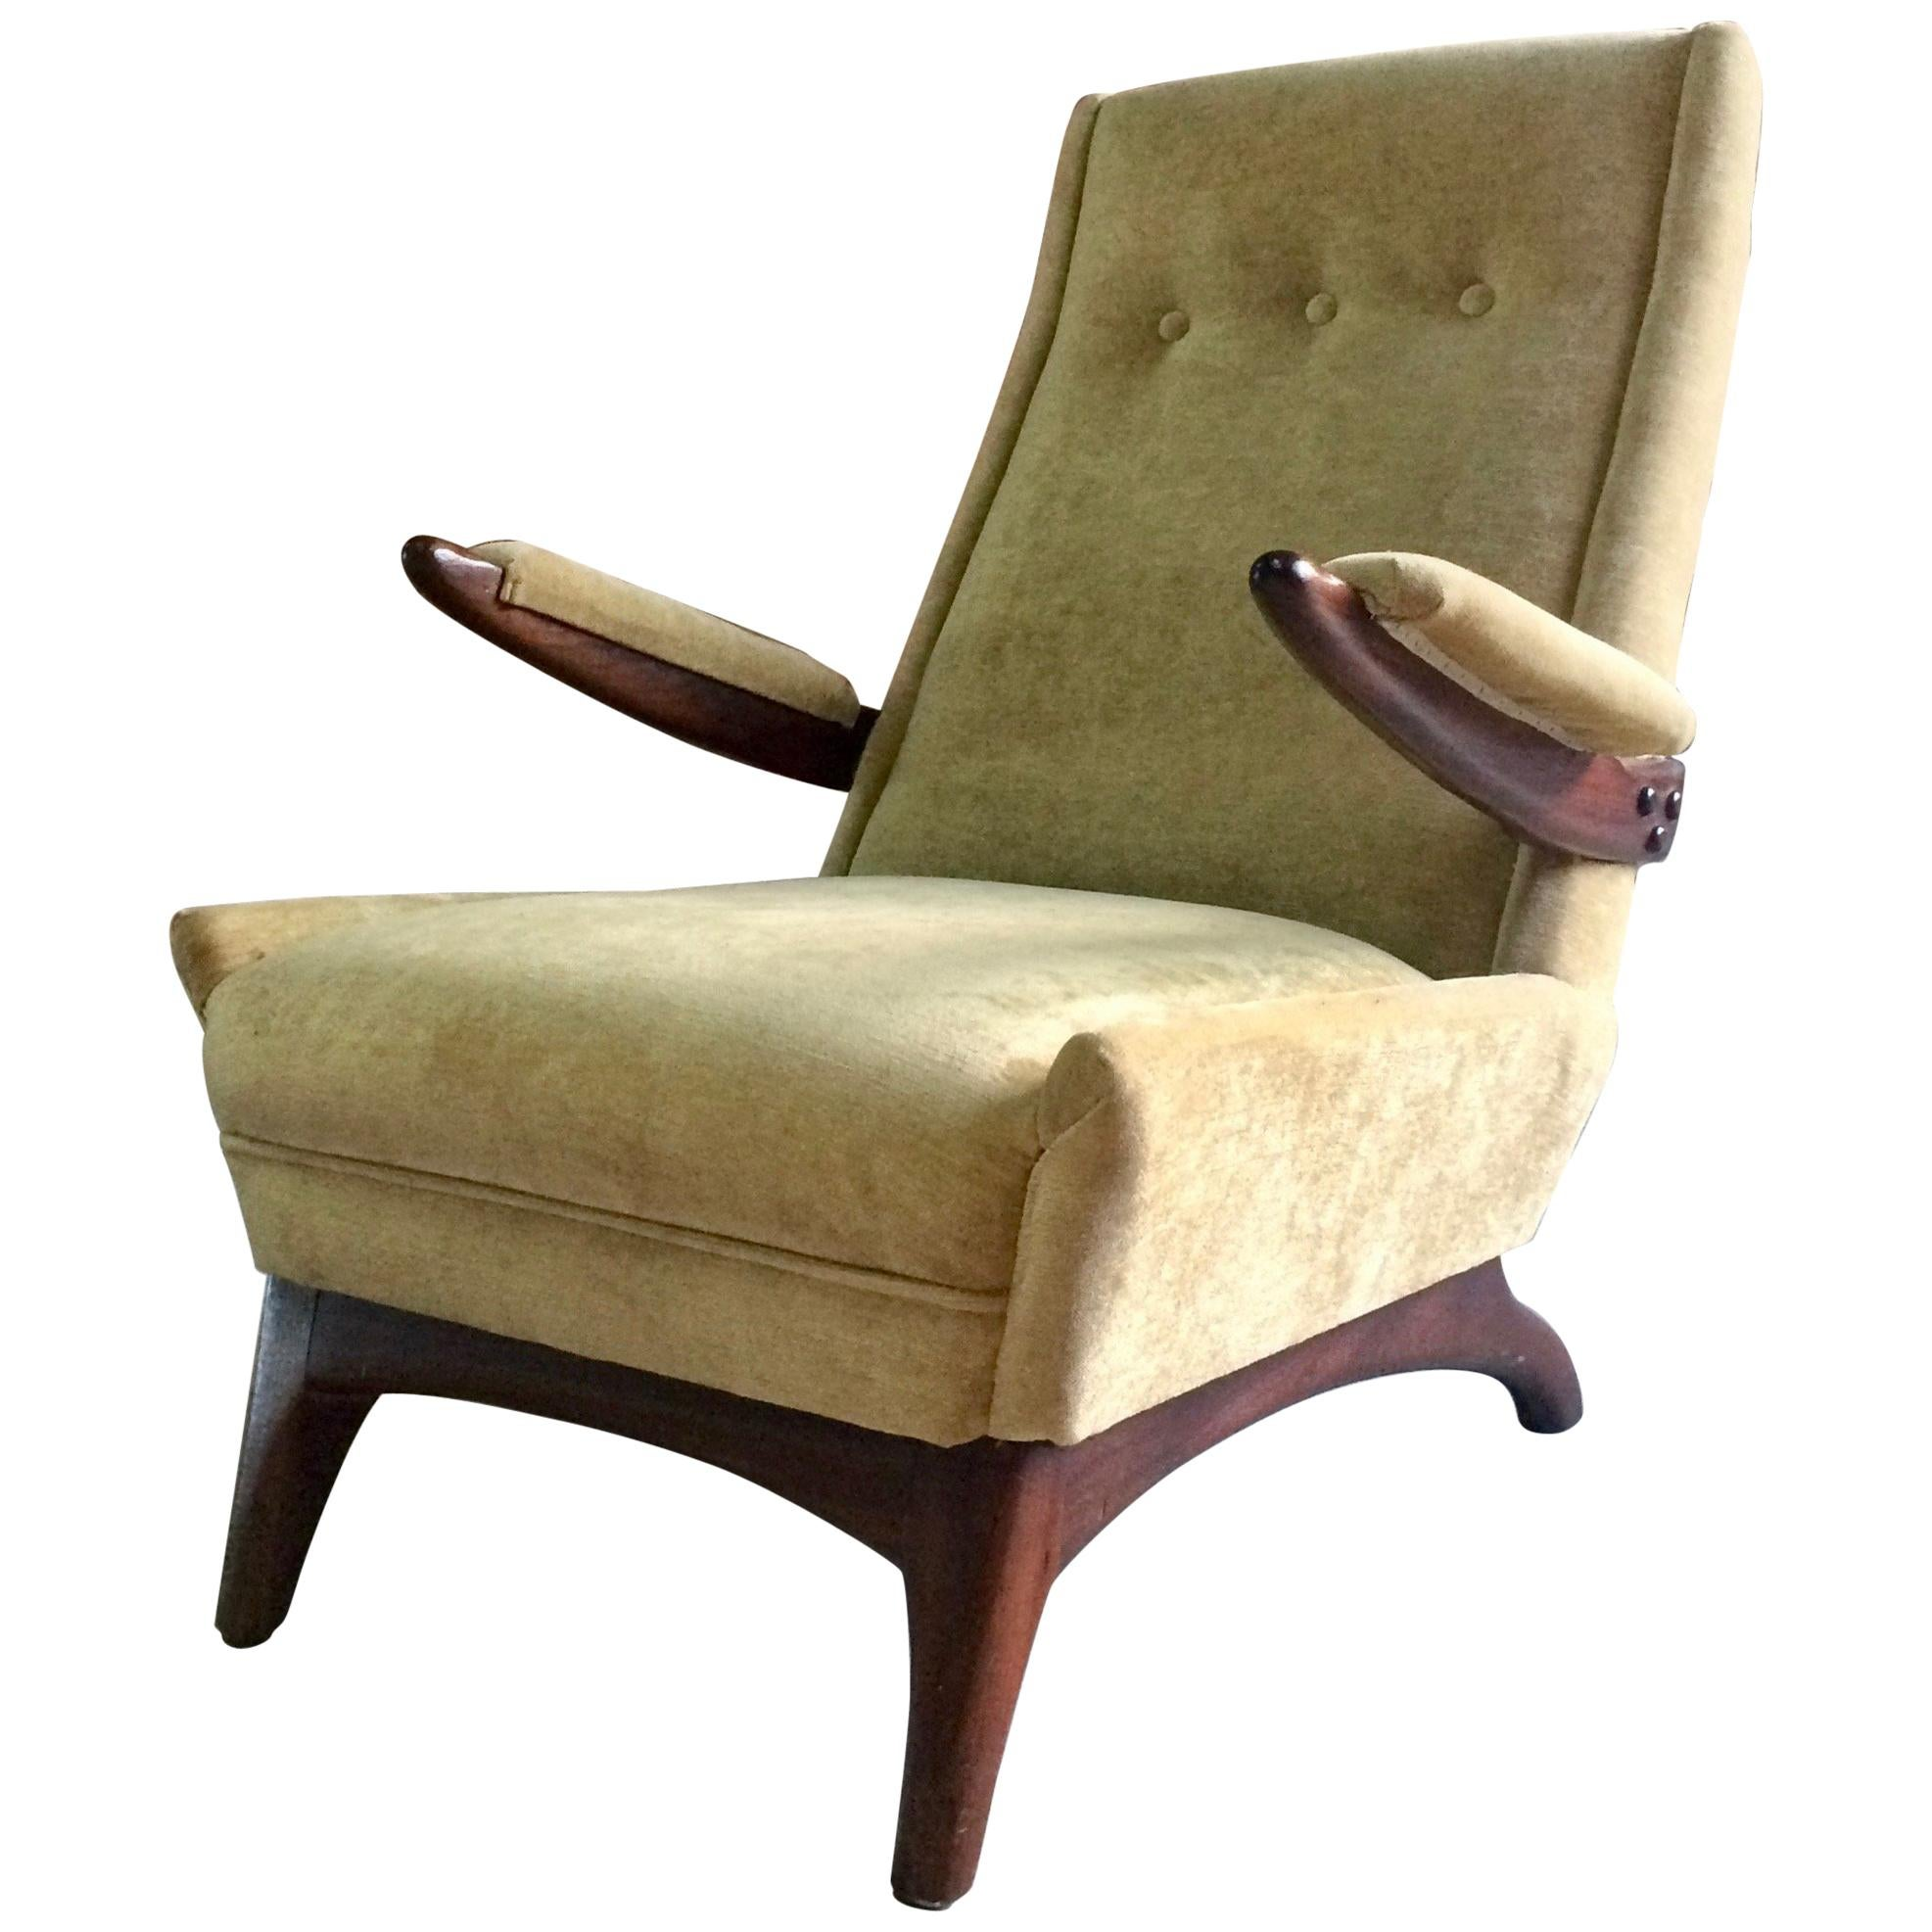 Midcentury Greaves and Thomas Armchair Lounge Chair, circa 1950s